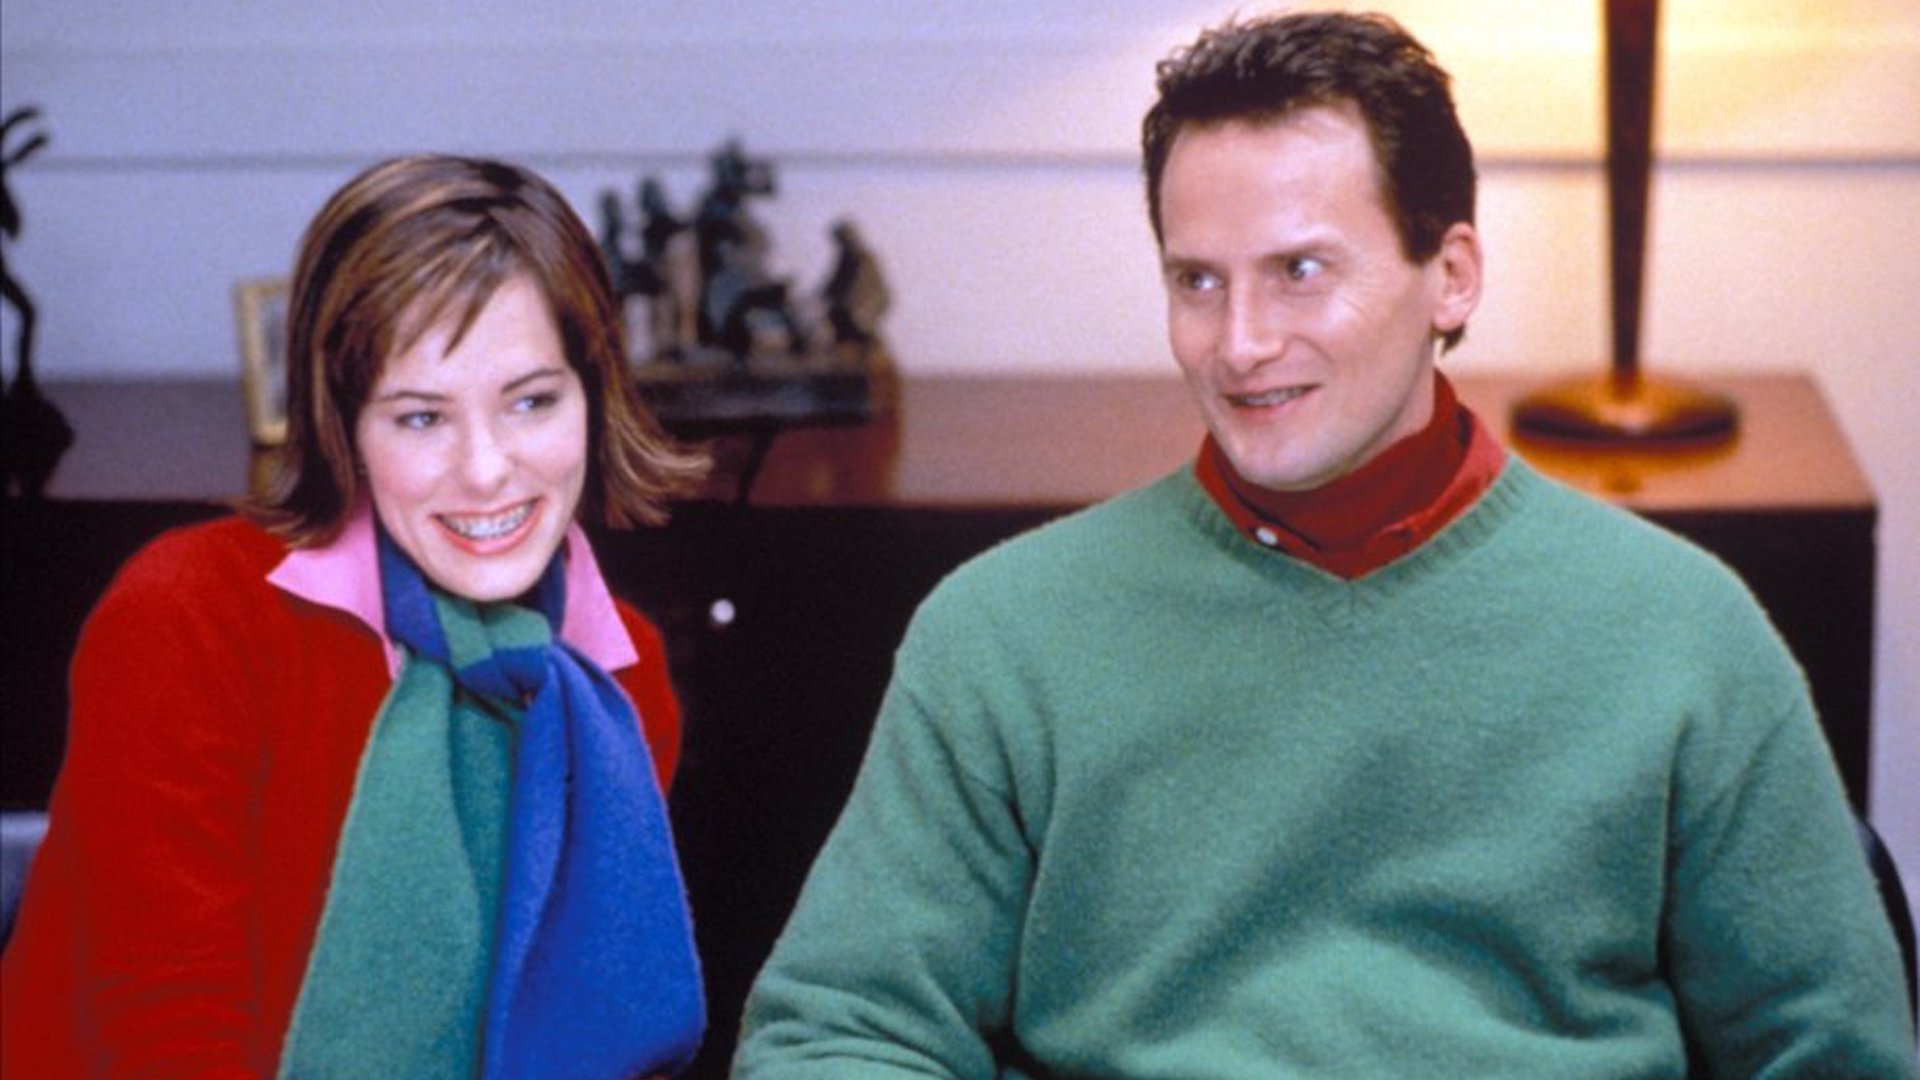 Parker Posey (right) and Michael Hitchcock (left) in Best in Show (2000).